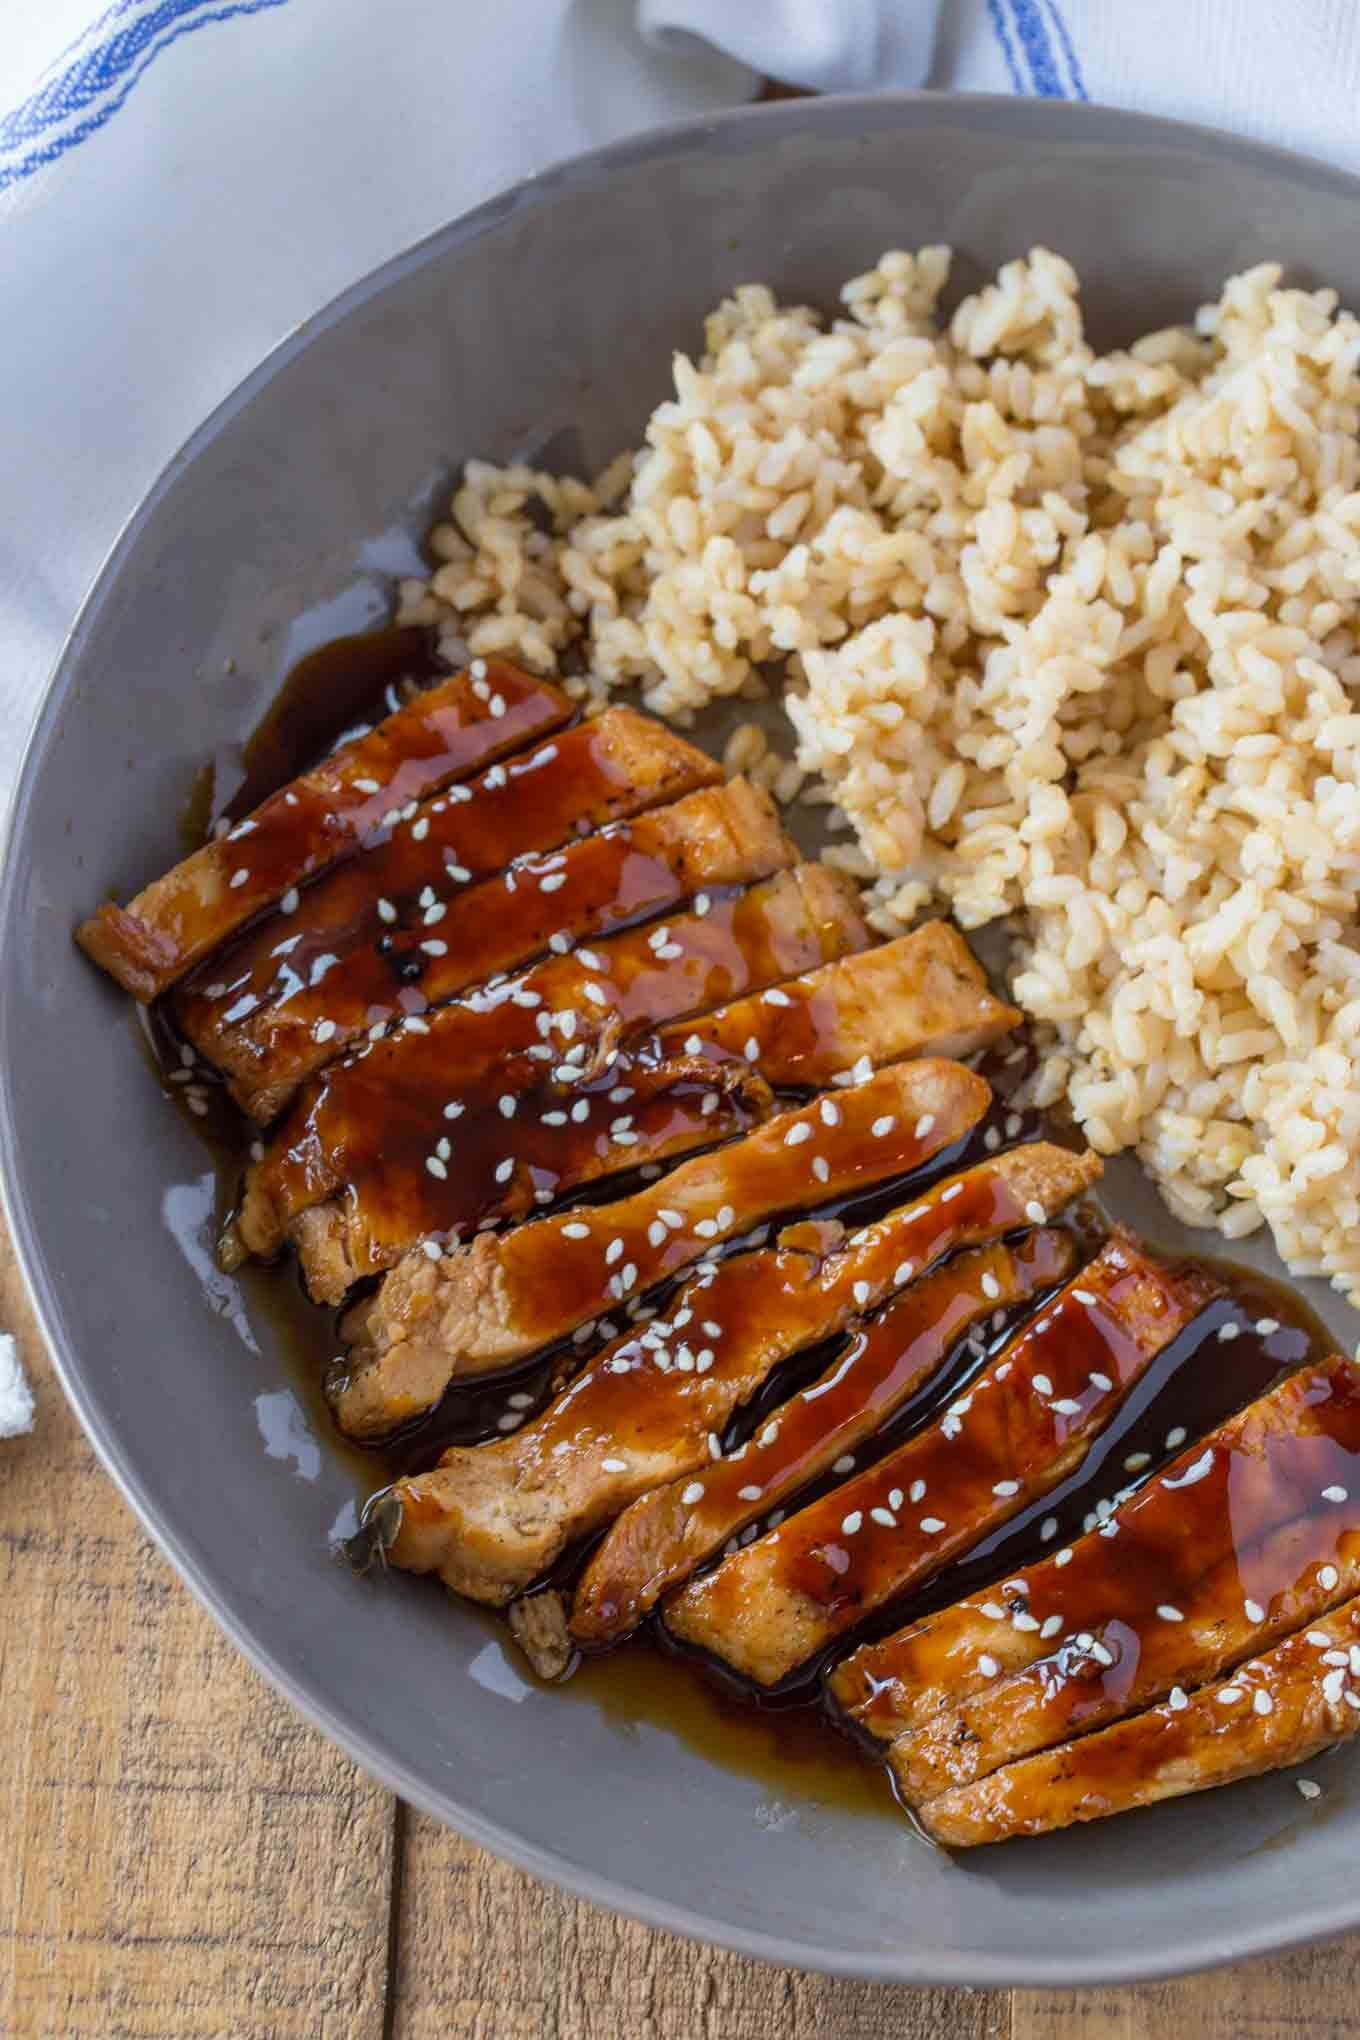 Skinny Teriyaki Chicken Made With A Quick And Easy Homemade Teriyaki Sauce In Less Than 30